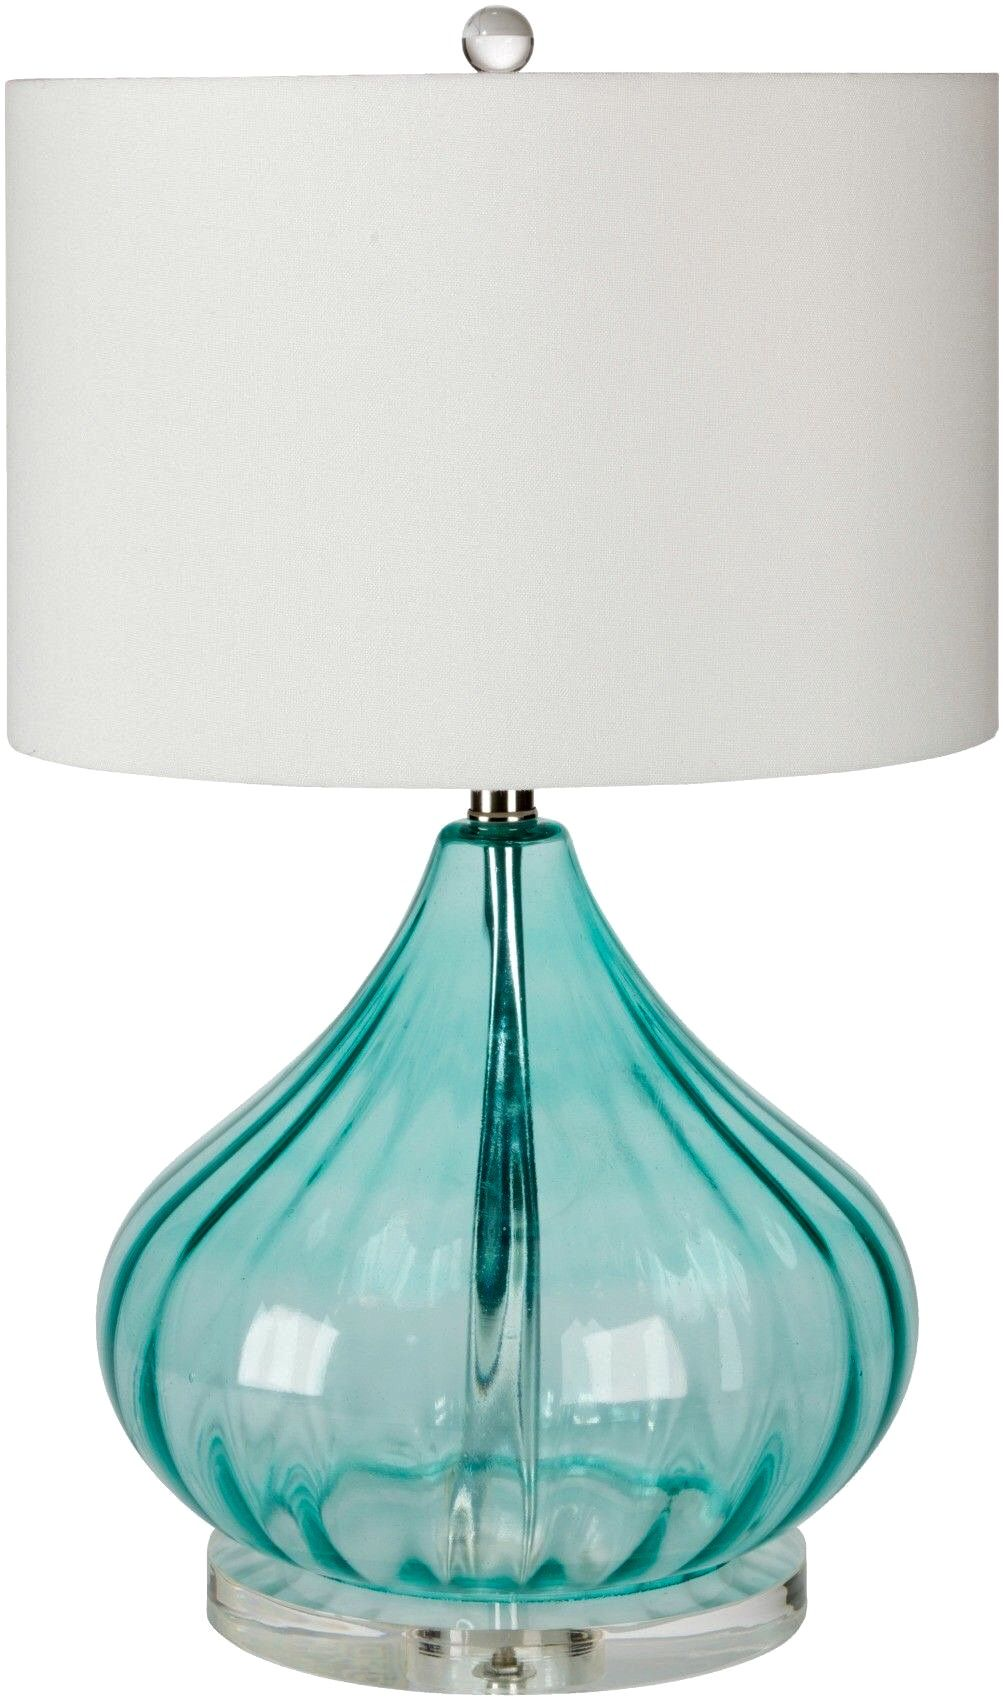 textured white lamp light shades globe of table products shade aqua